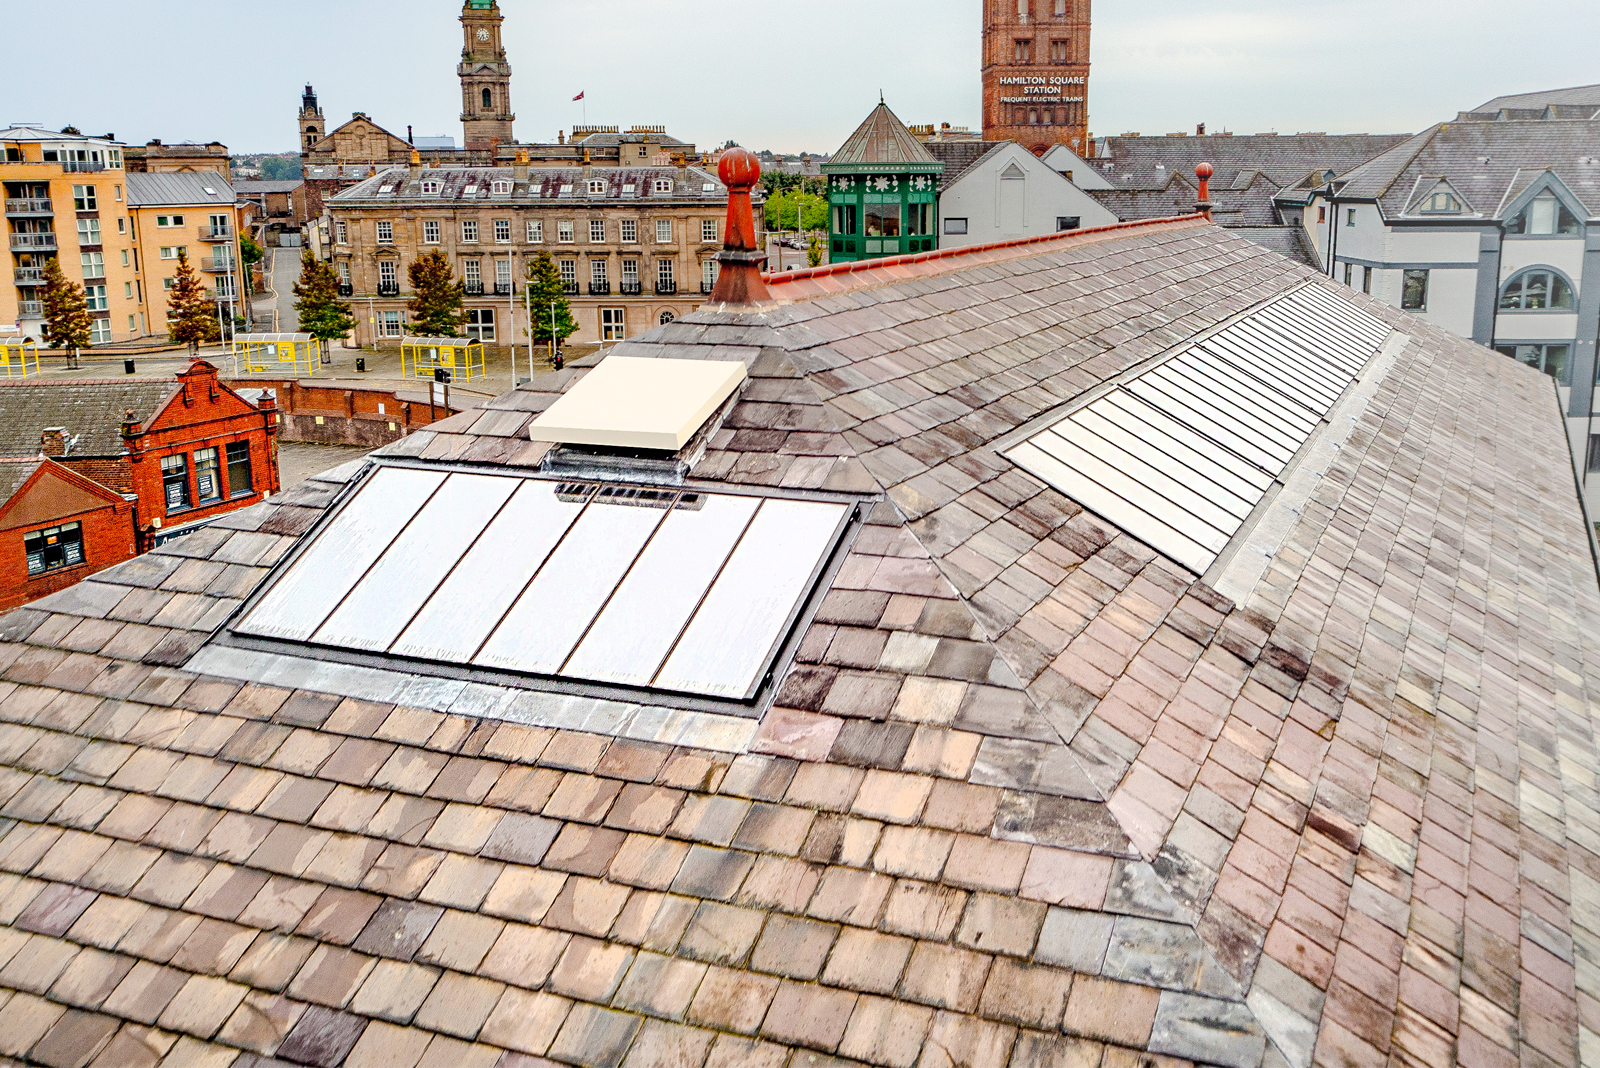 The practicality in specifying large rooflights